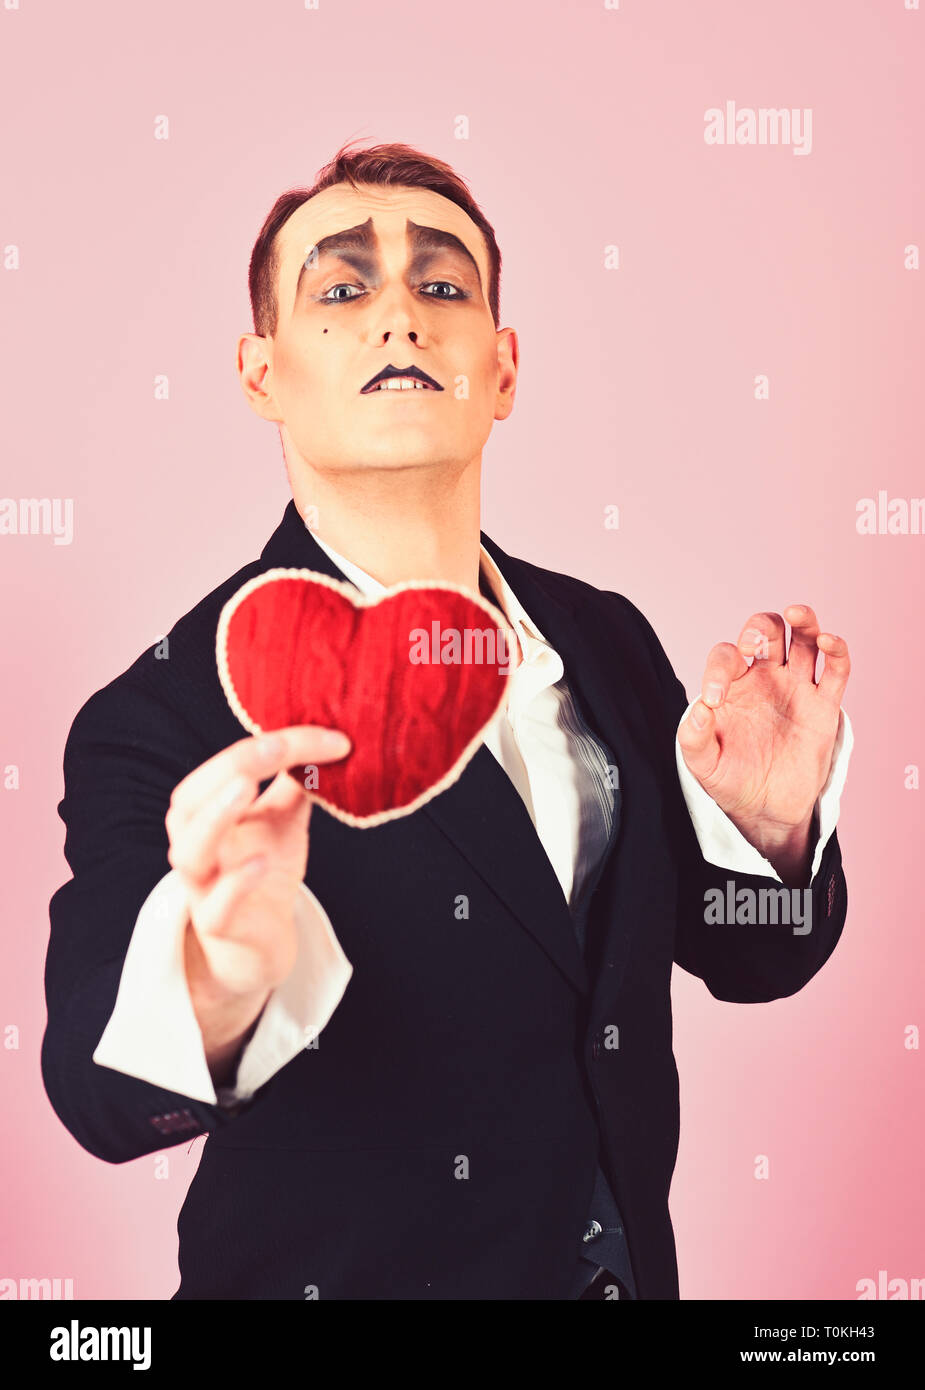 Serious about someone. Love confession on valentines day. Mime man hold red heart for valentines day. Mime actor with love symbol. Theatre actor - Stock Image